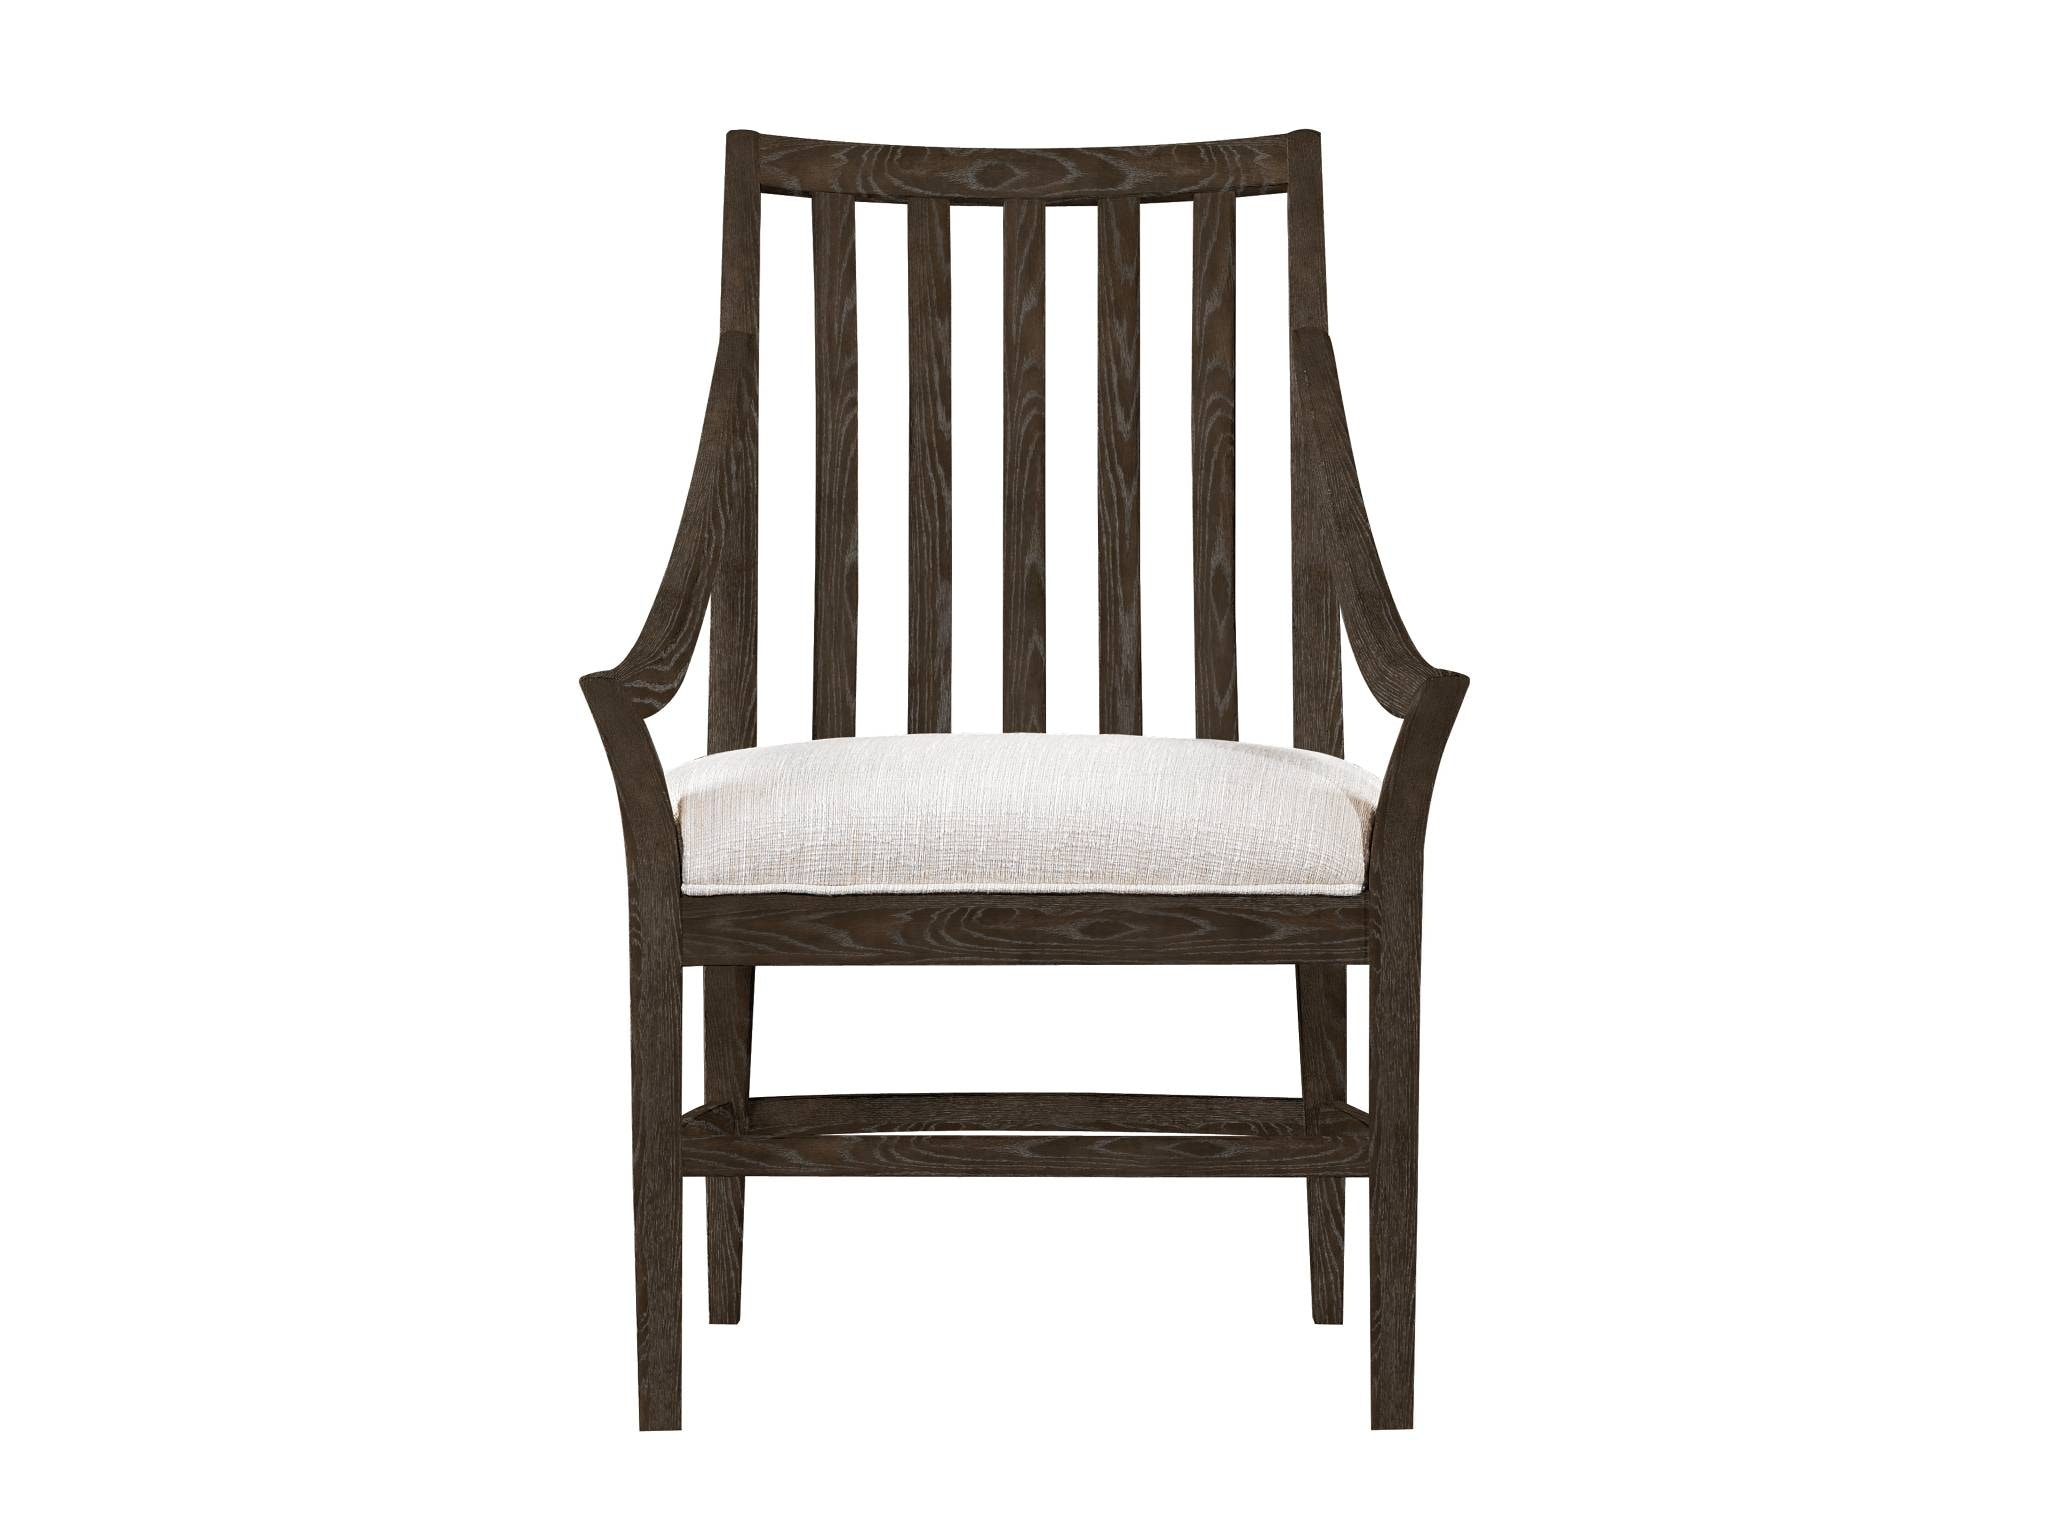 Coastal Living By The Bay Dining Chair 062 11 65